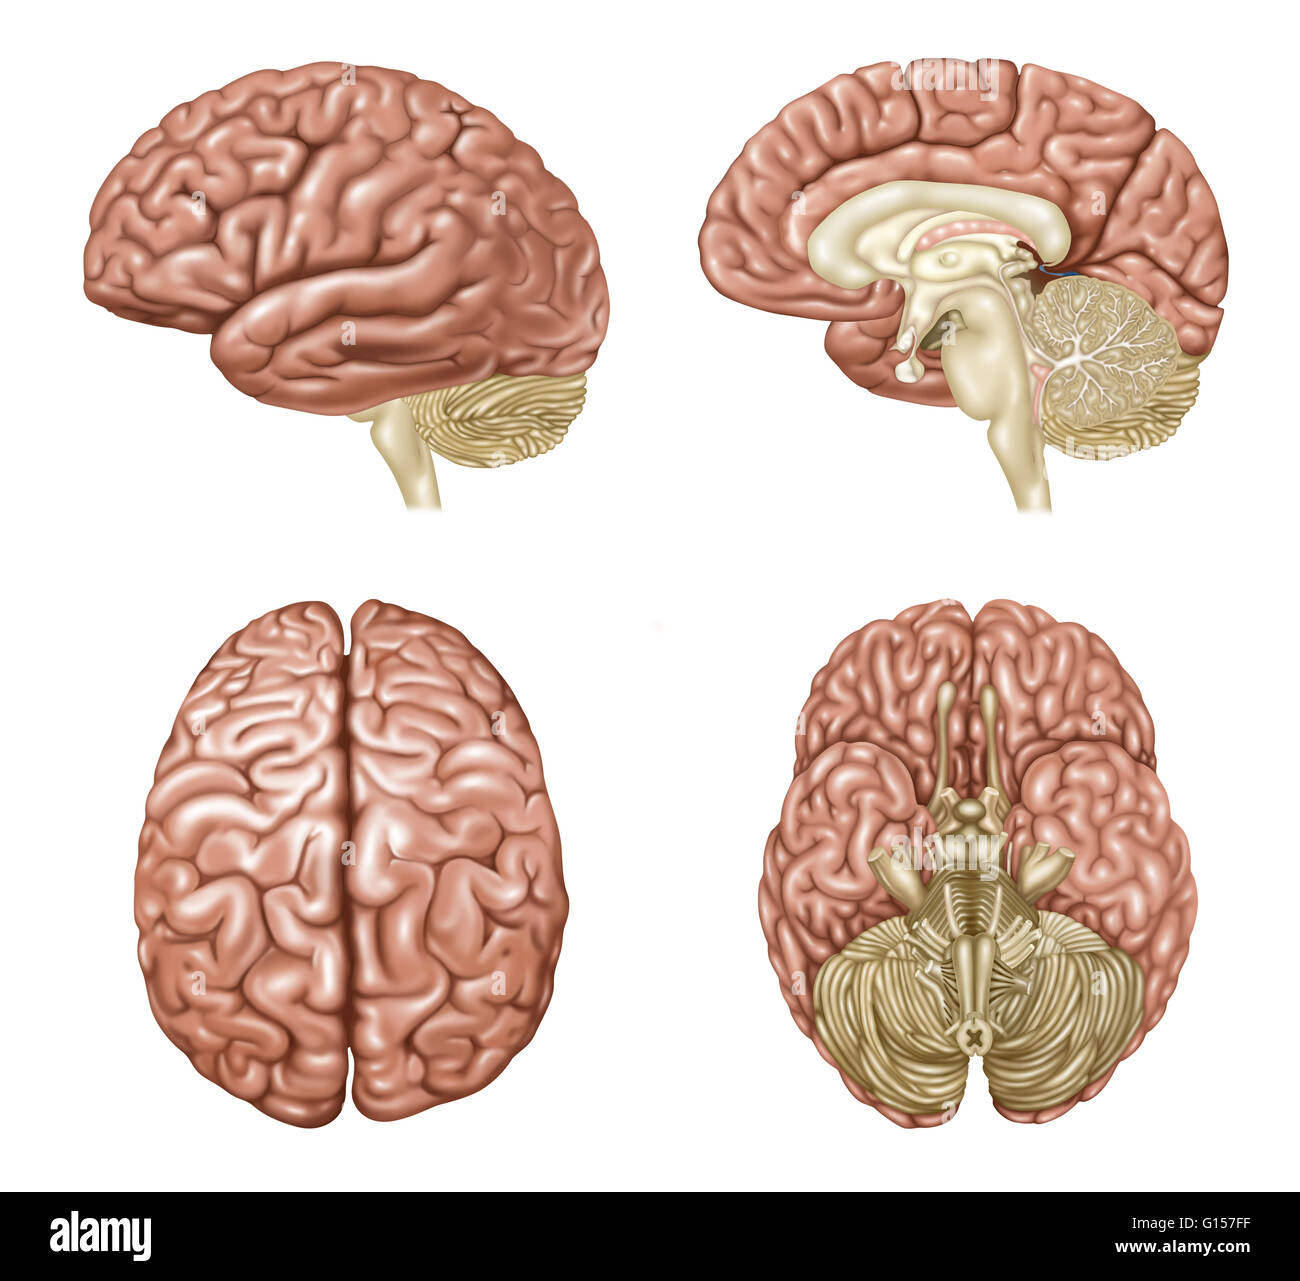 Illustration Showing Anatomy Of A Normal Brain In Lateral Sagittal